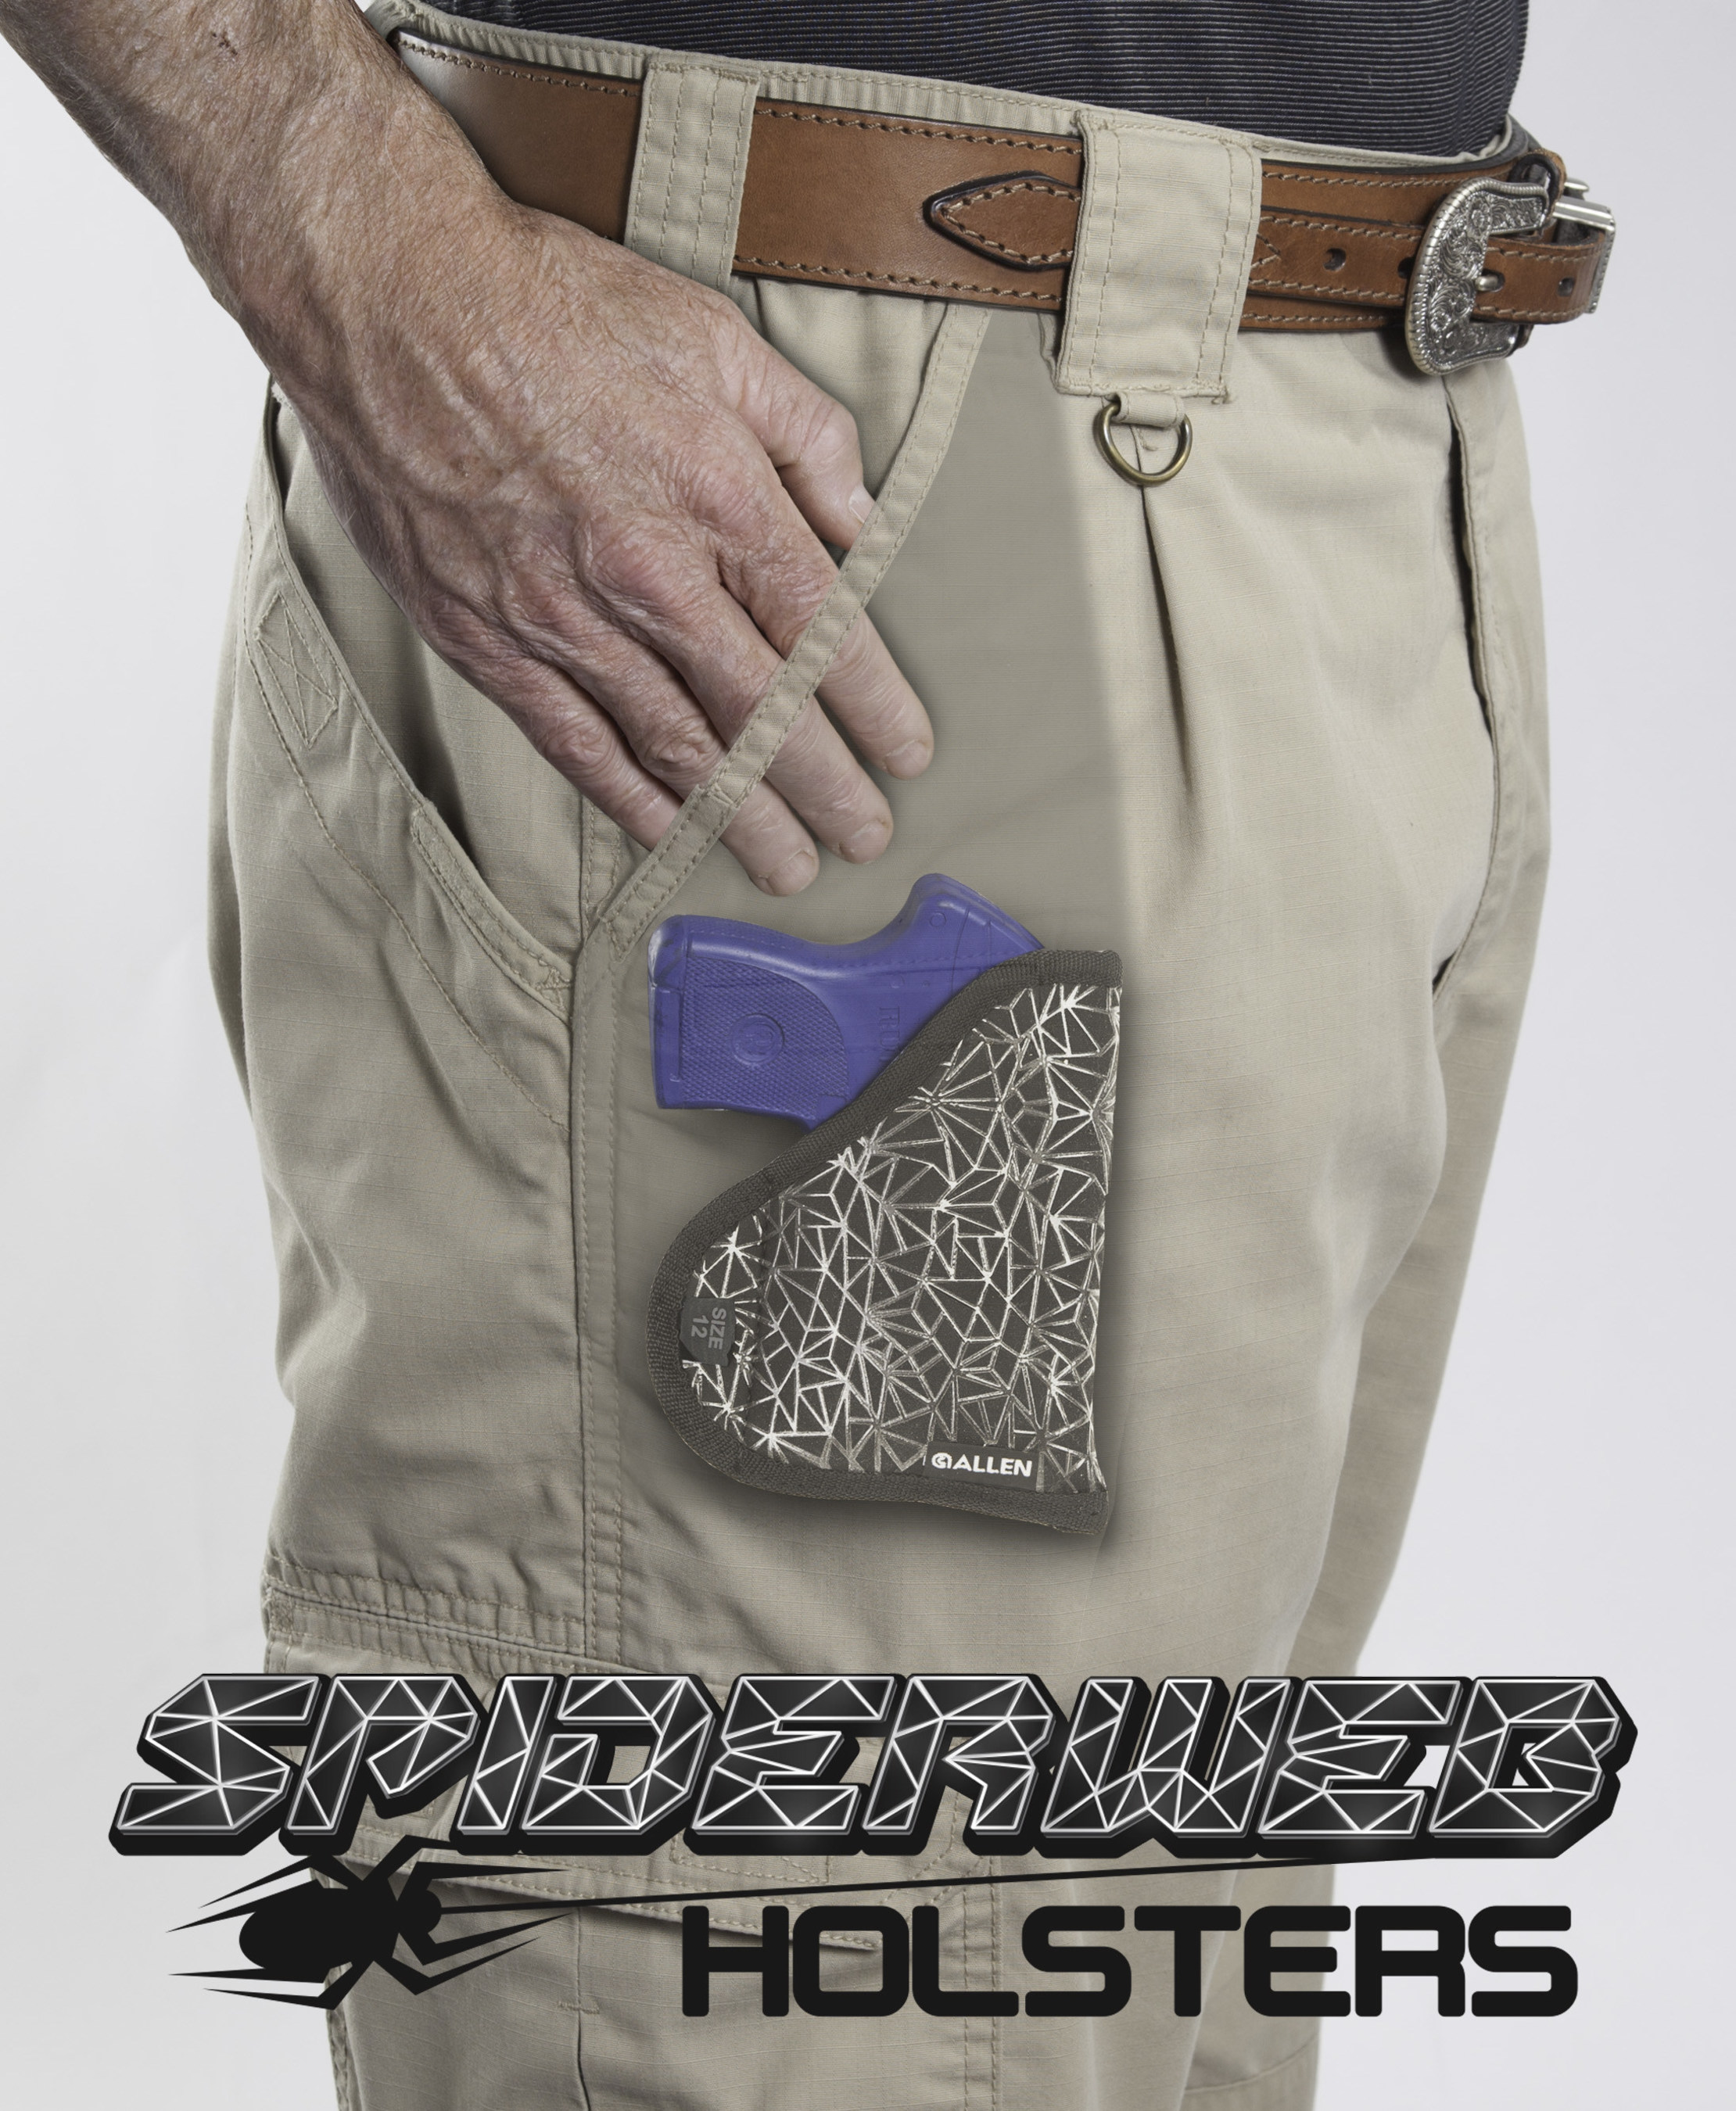 Allen Company Expands Concealed Carry With Spiderweb Holster(TM)